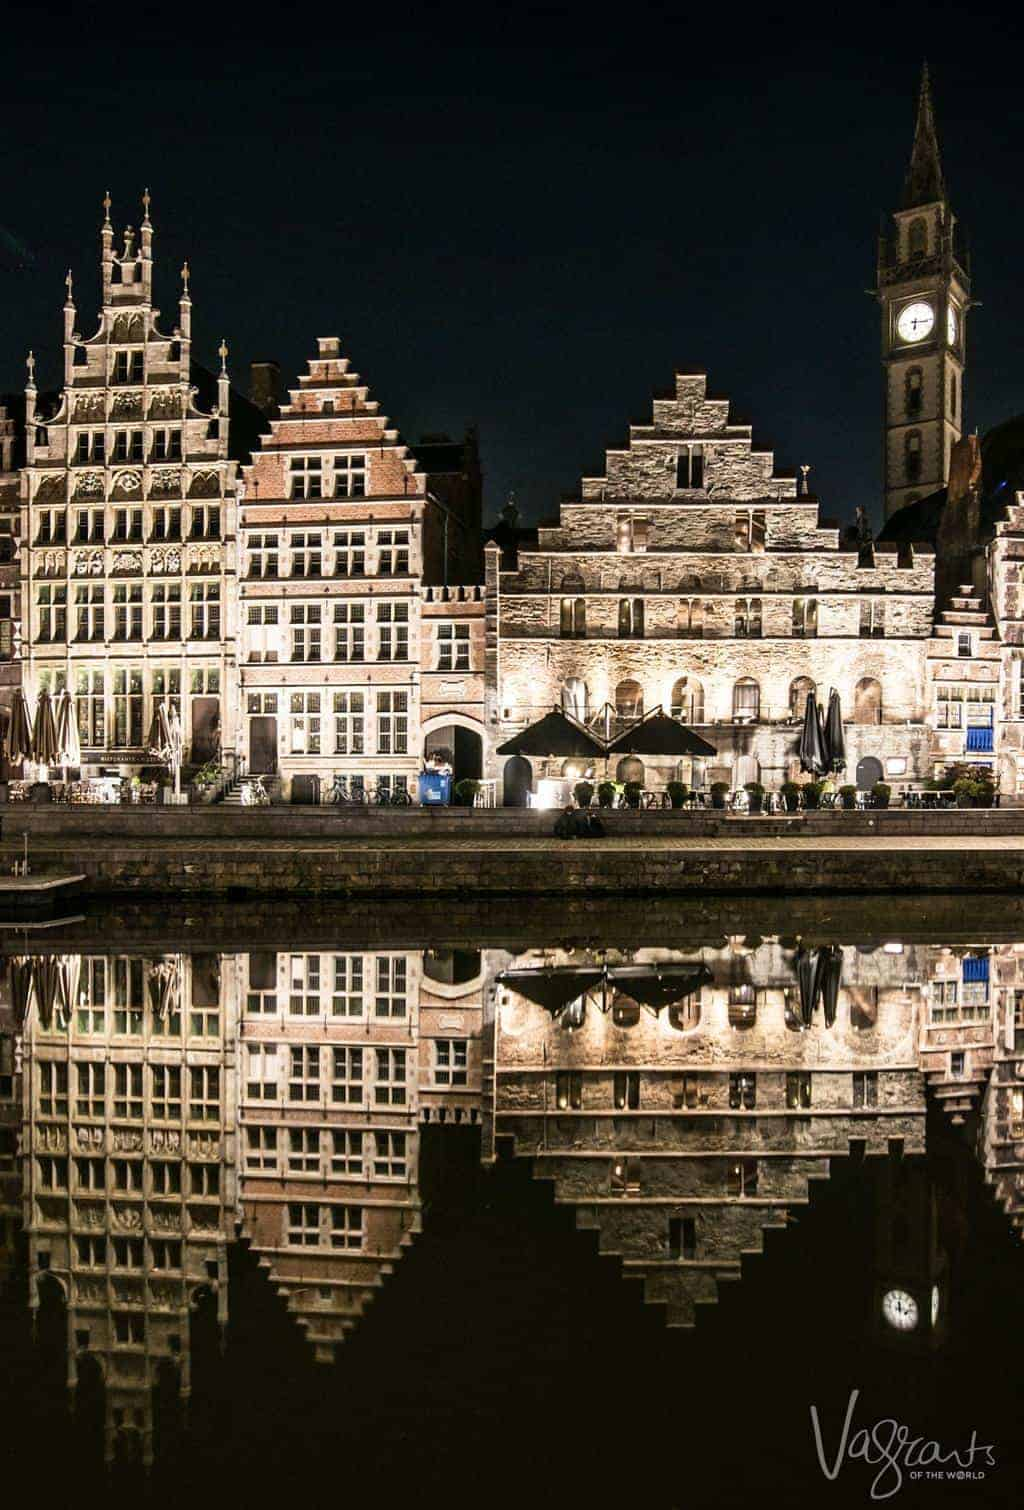 Want to know what to do in Belgium? Start with Ghent.